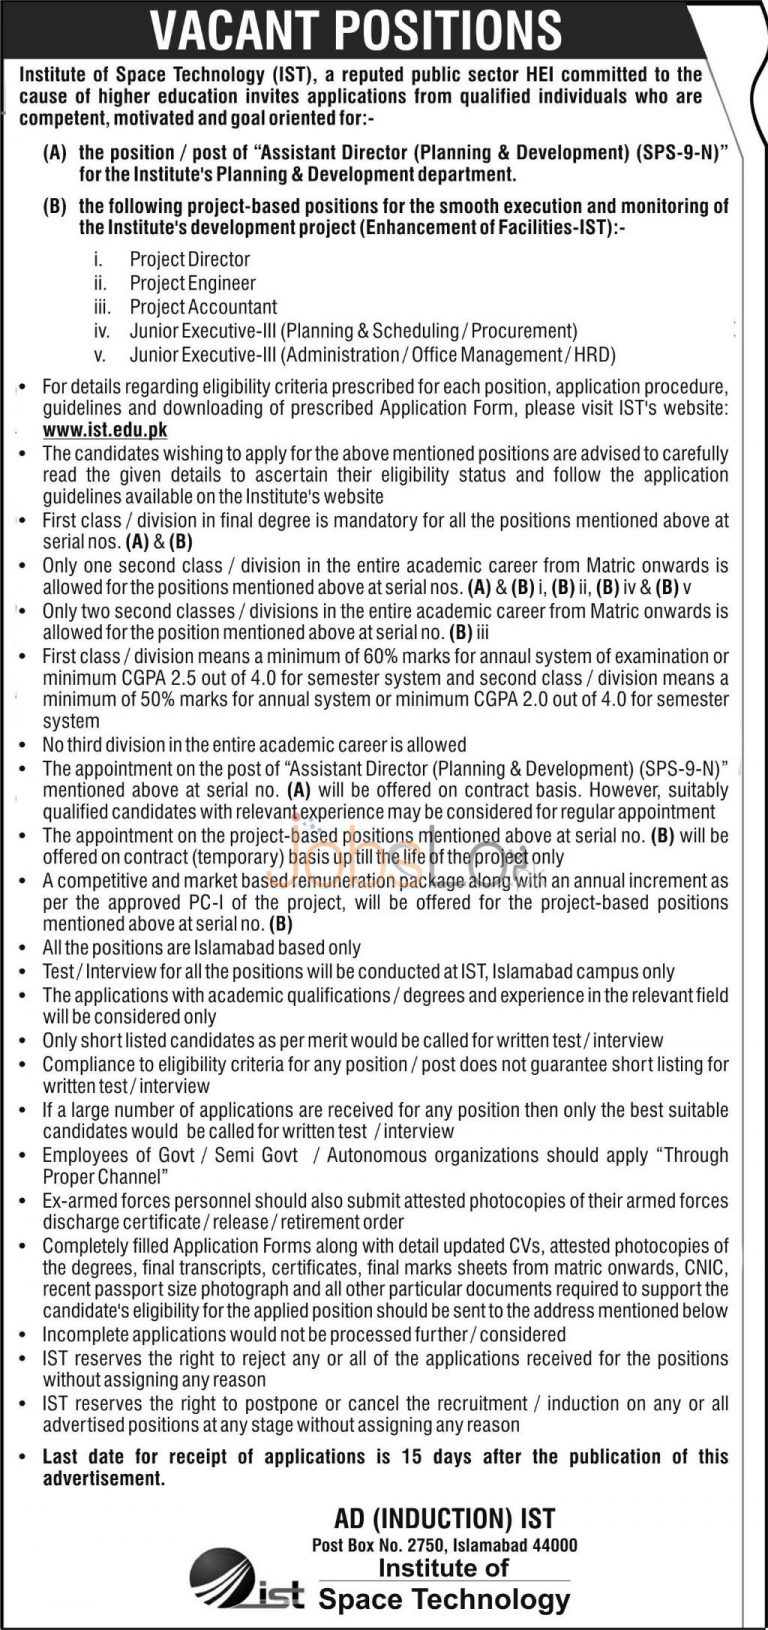 Institute of Space Technology IST Islamabad Jobs 2016 Application Form www.ist.edu.pk